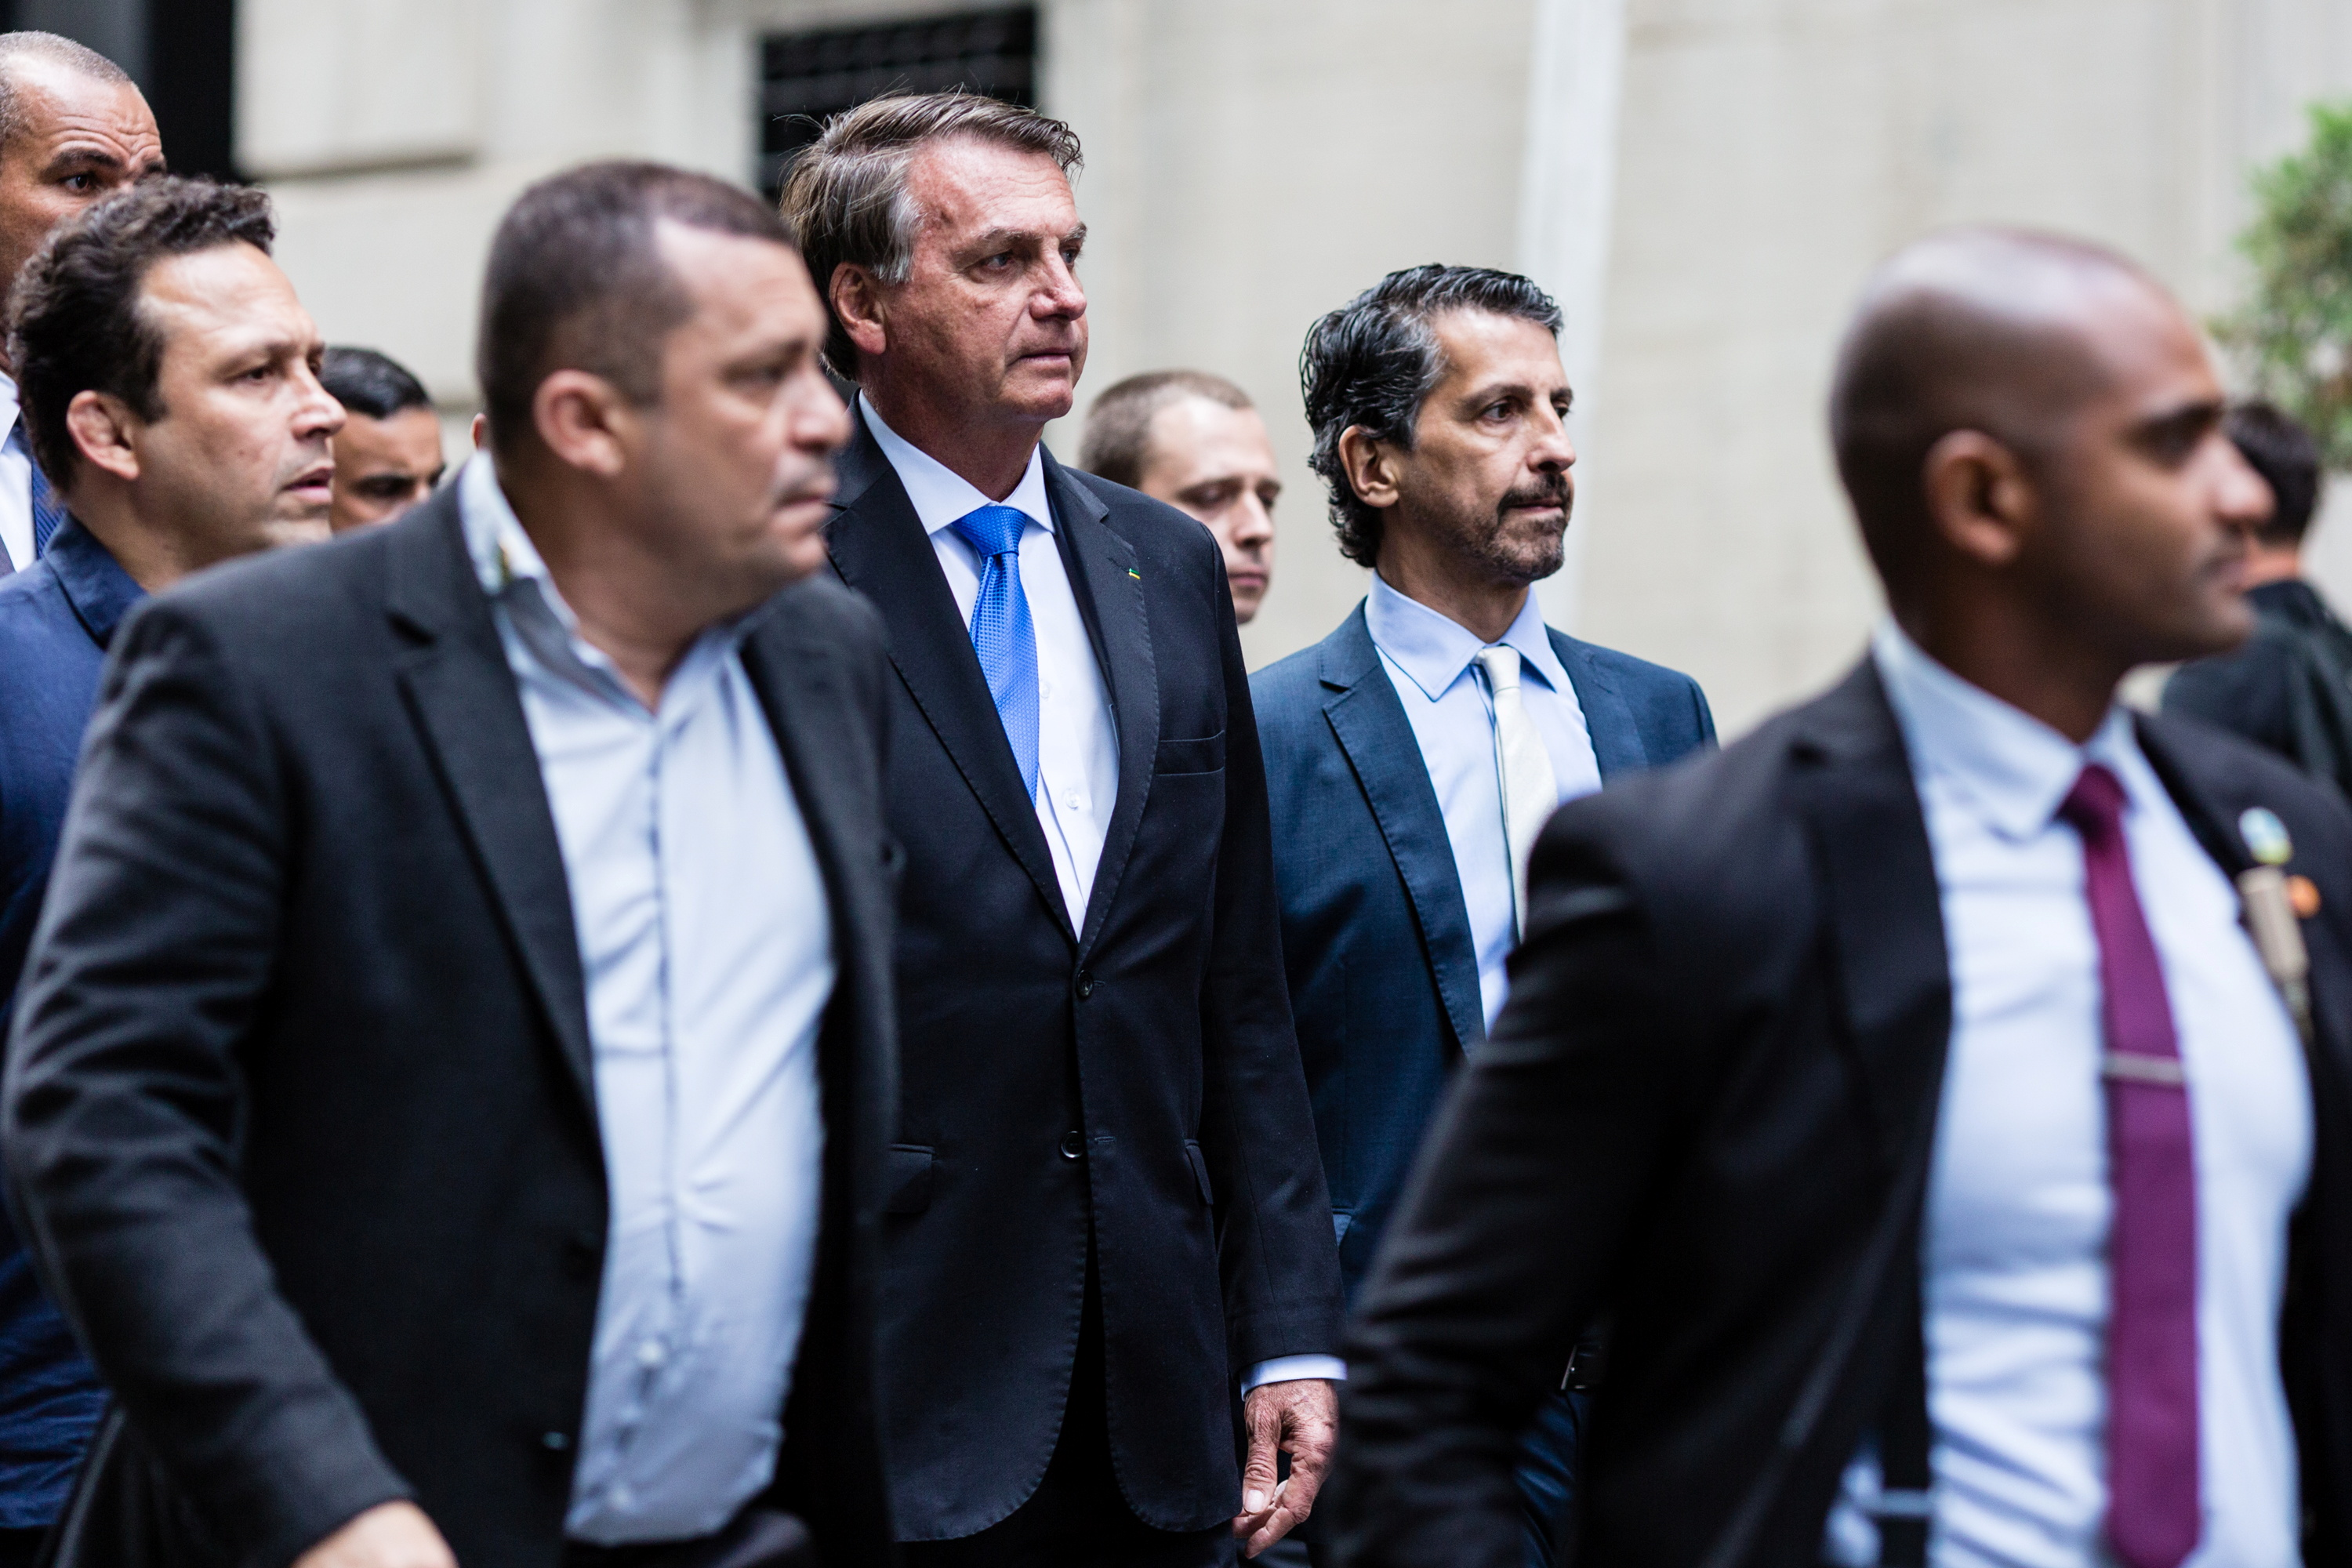 Brazil's President Jair Bolsonaro walks outside his hotel while attending the UN General Assembly 76th session General Debate at the United Nations, in New York City, U.S., September 20, 2021. REUTERS/Stefan Jeremiah